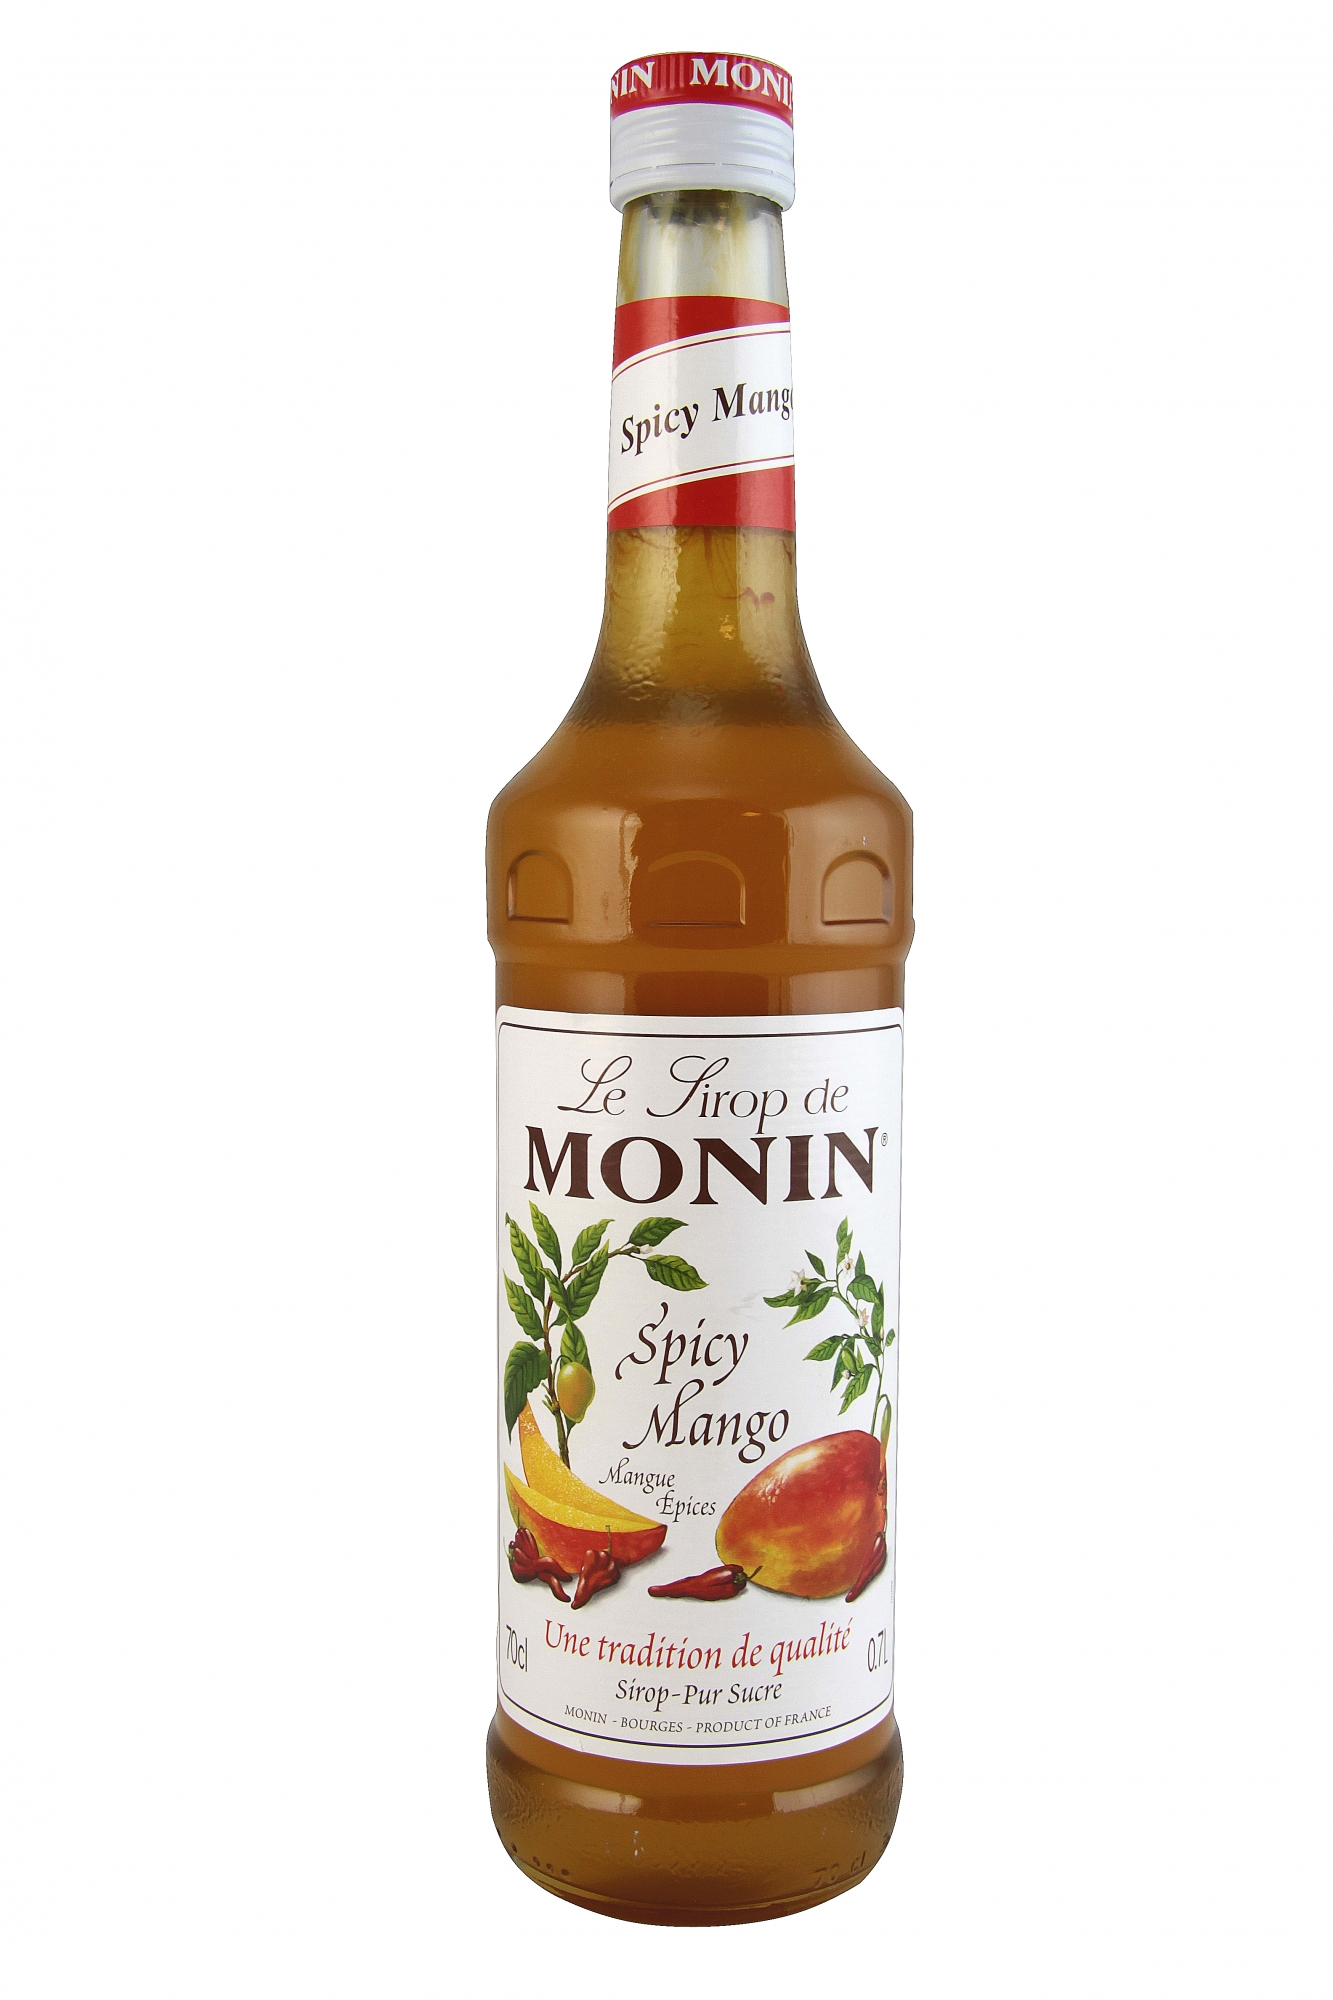 Monin - Spicy Mango 700 ml